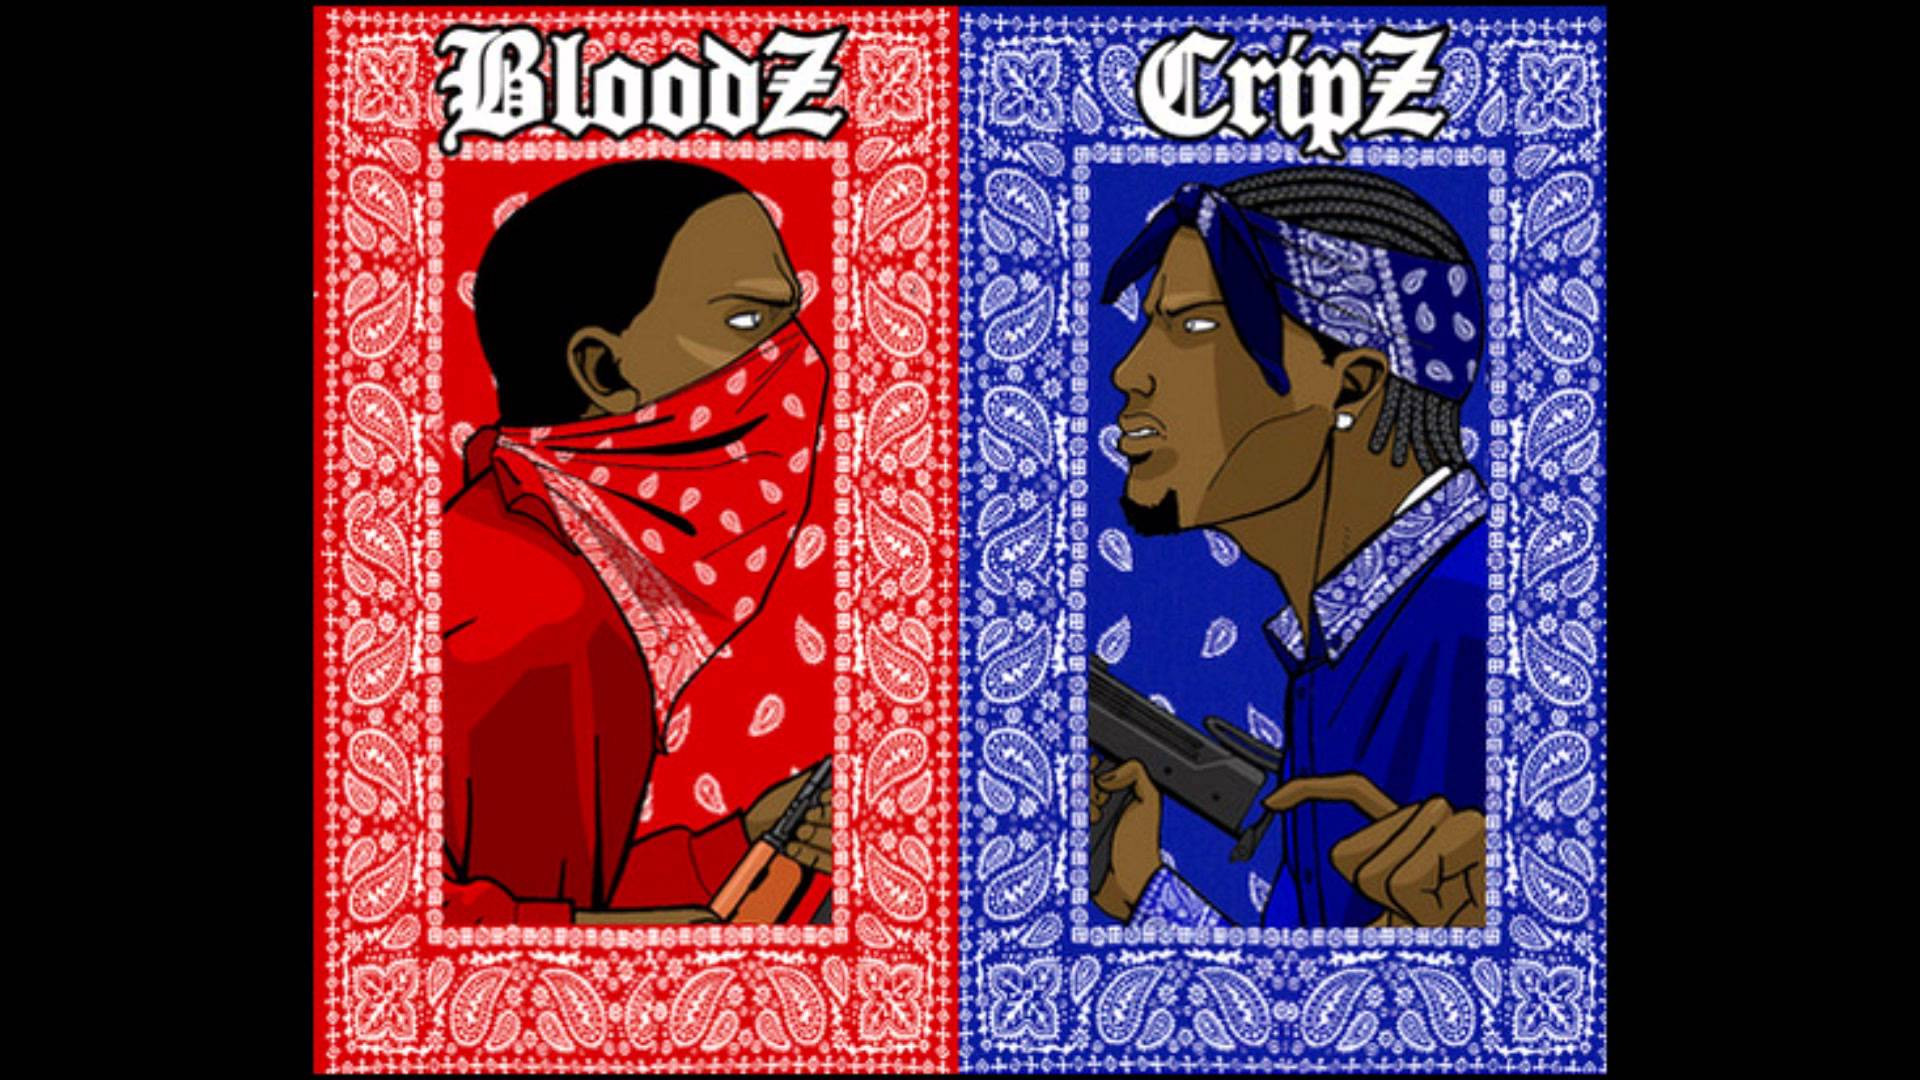 Res: 1920x1080, ... Maxresdefaultr Crib Cribs And Bloods 7c Inspiring ...